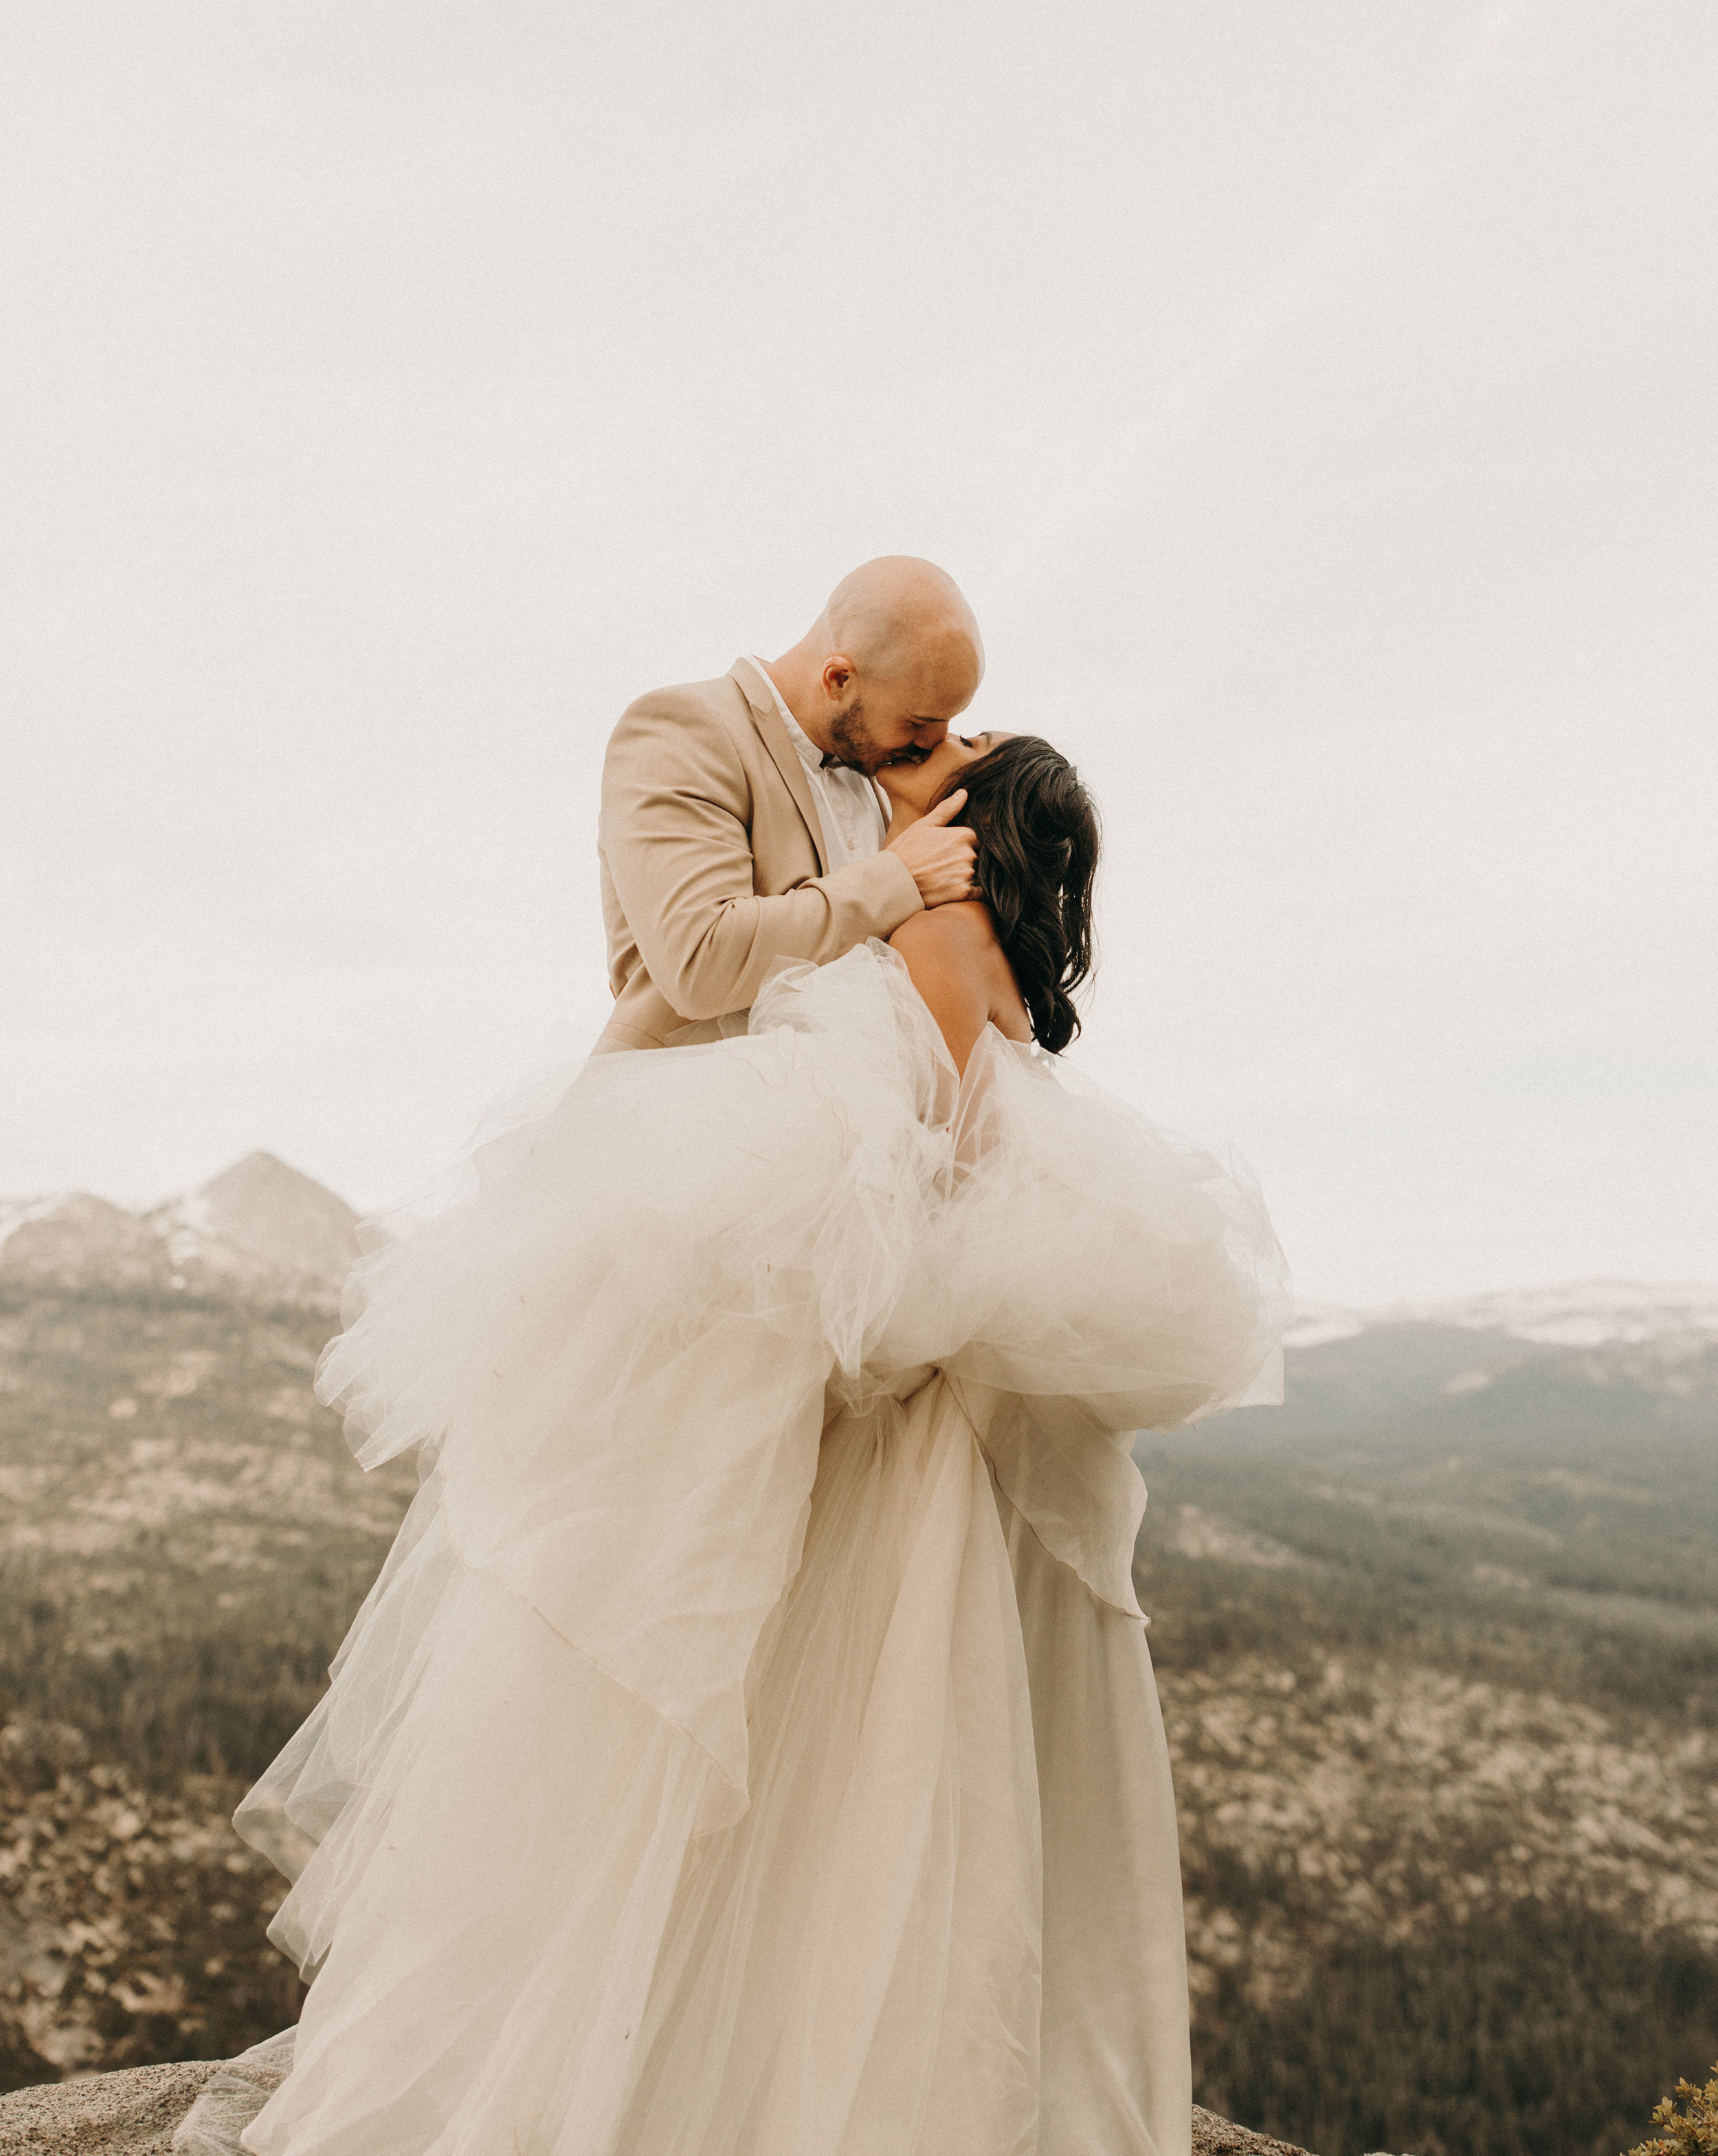 elopements are a way of intentionally going back to the core of what a wedding day really is about :sharing your vows to one another and having the day be a reflection of your relationship. - //